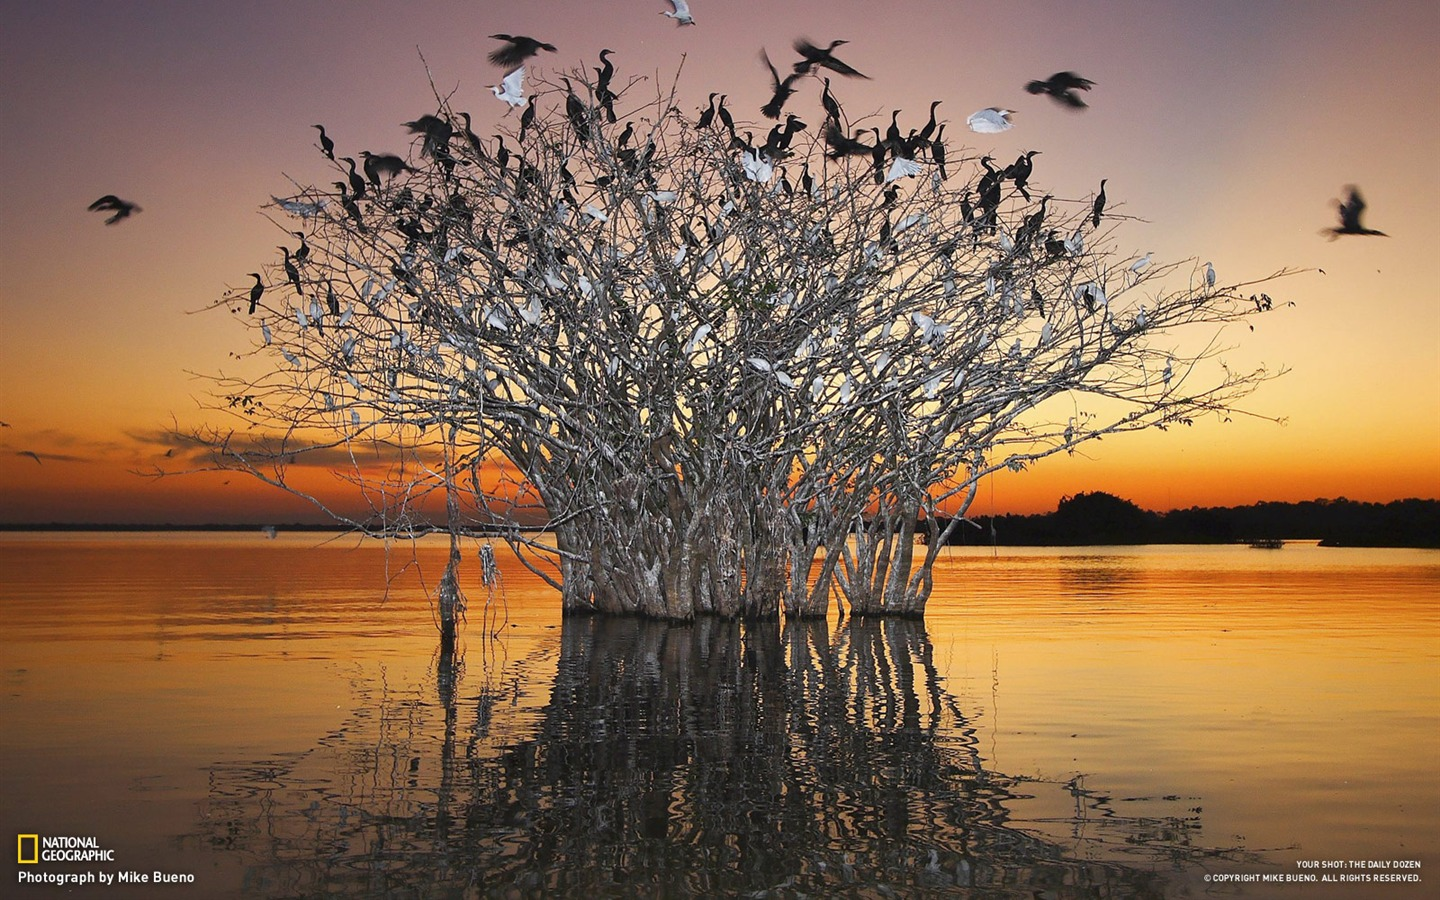 Photo Of The Day: Pantanal Wetlands Of The Birds-National Geographic-Photo